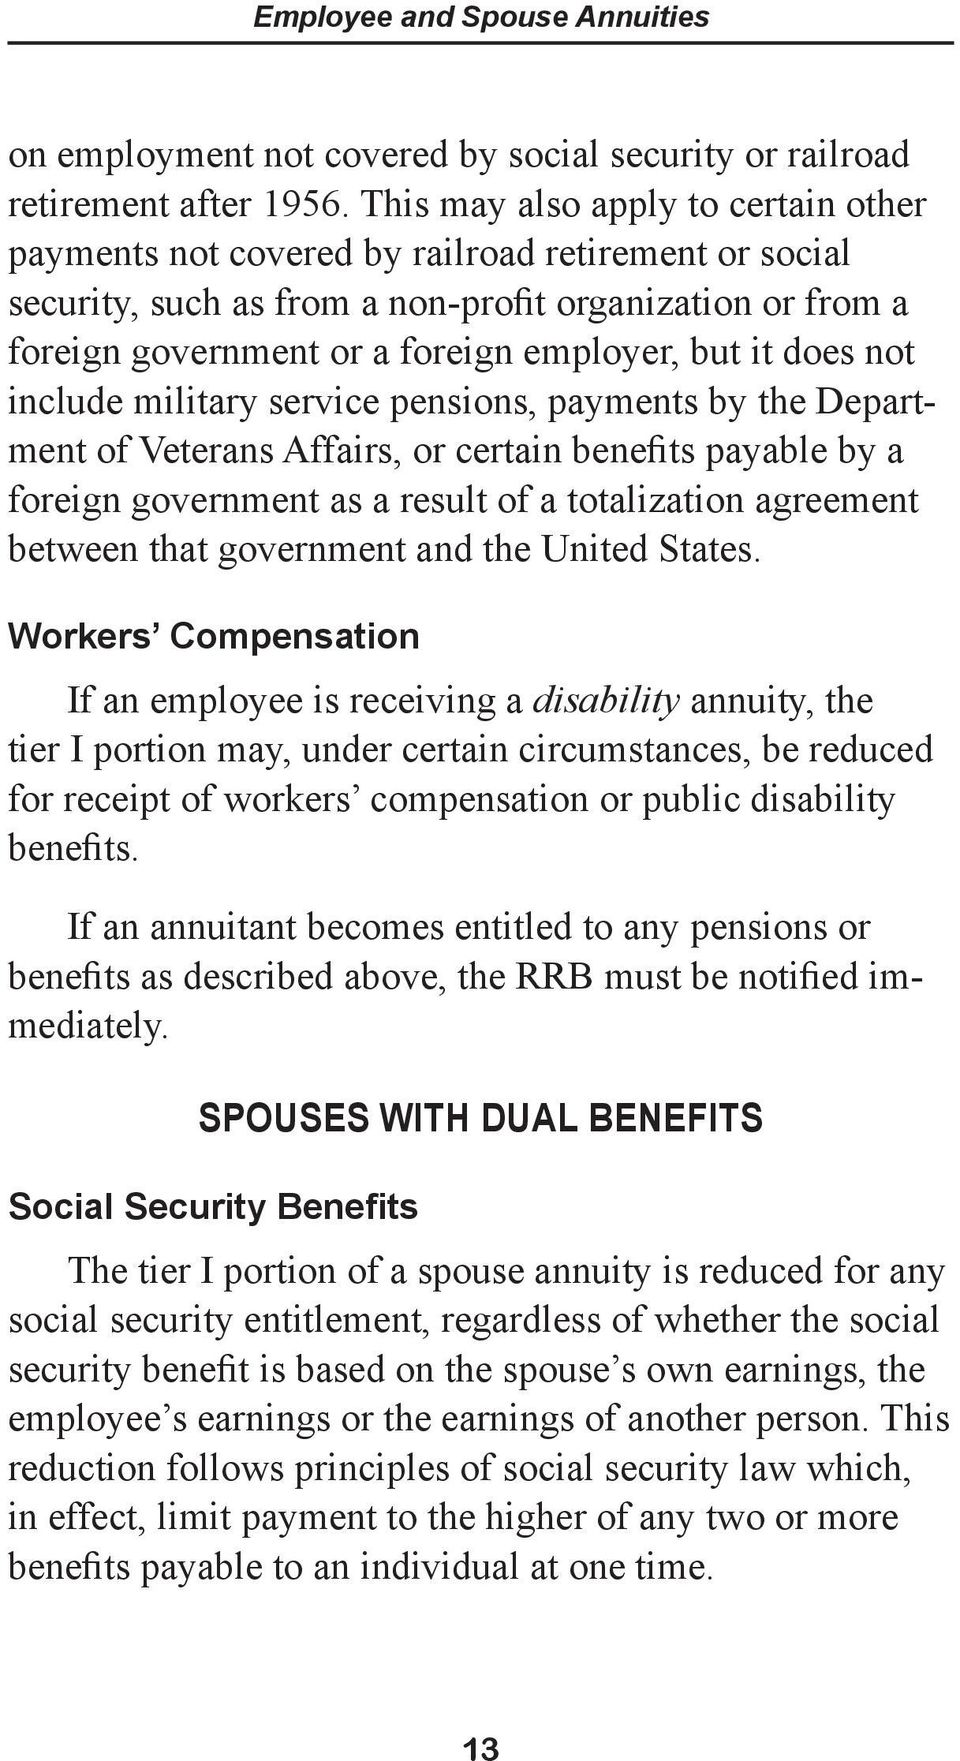 does not include military service pensions, payments by the Department of Veterans Affairs, or certain benefits payable by a foreign government as a result of a totalization agreement between that